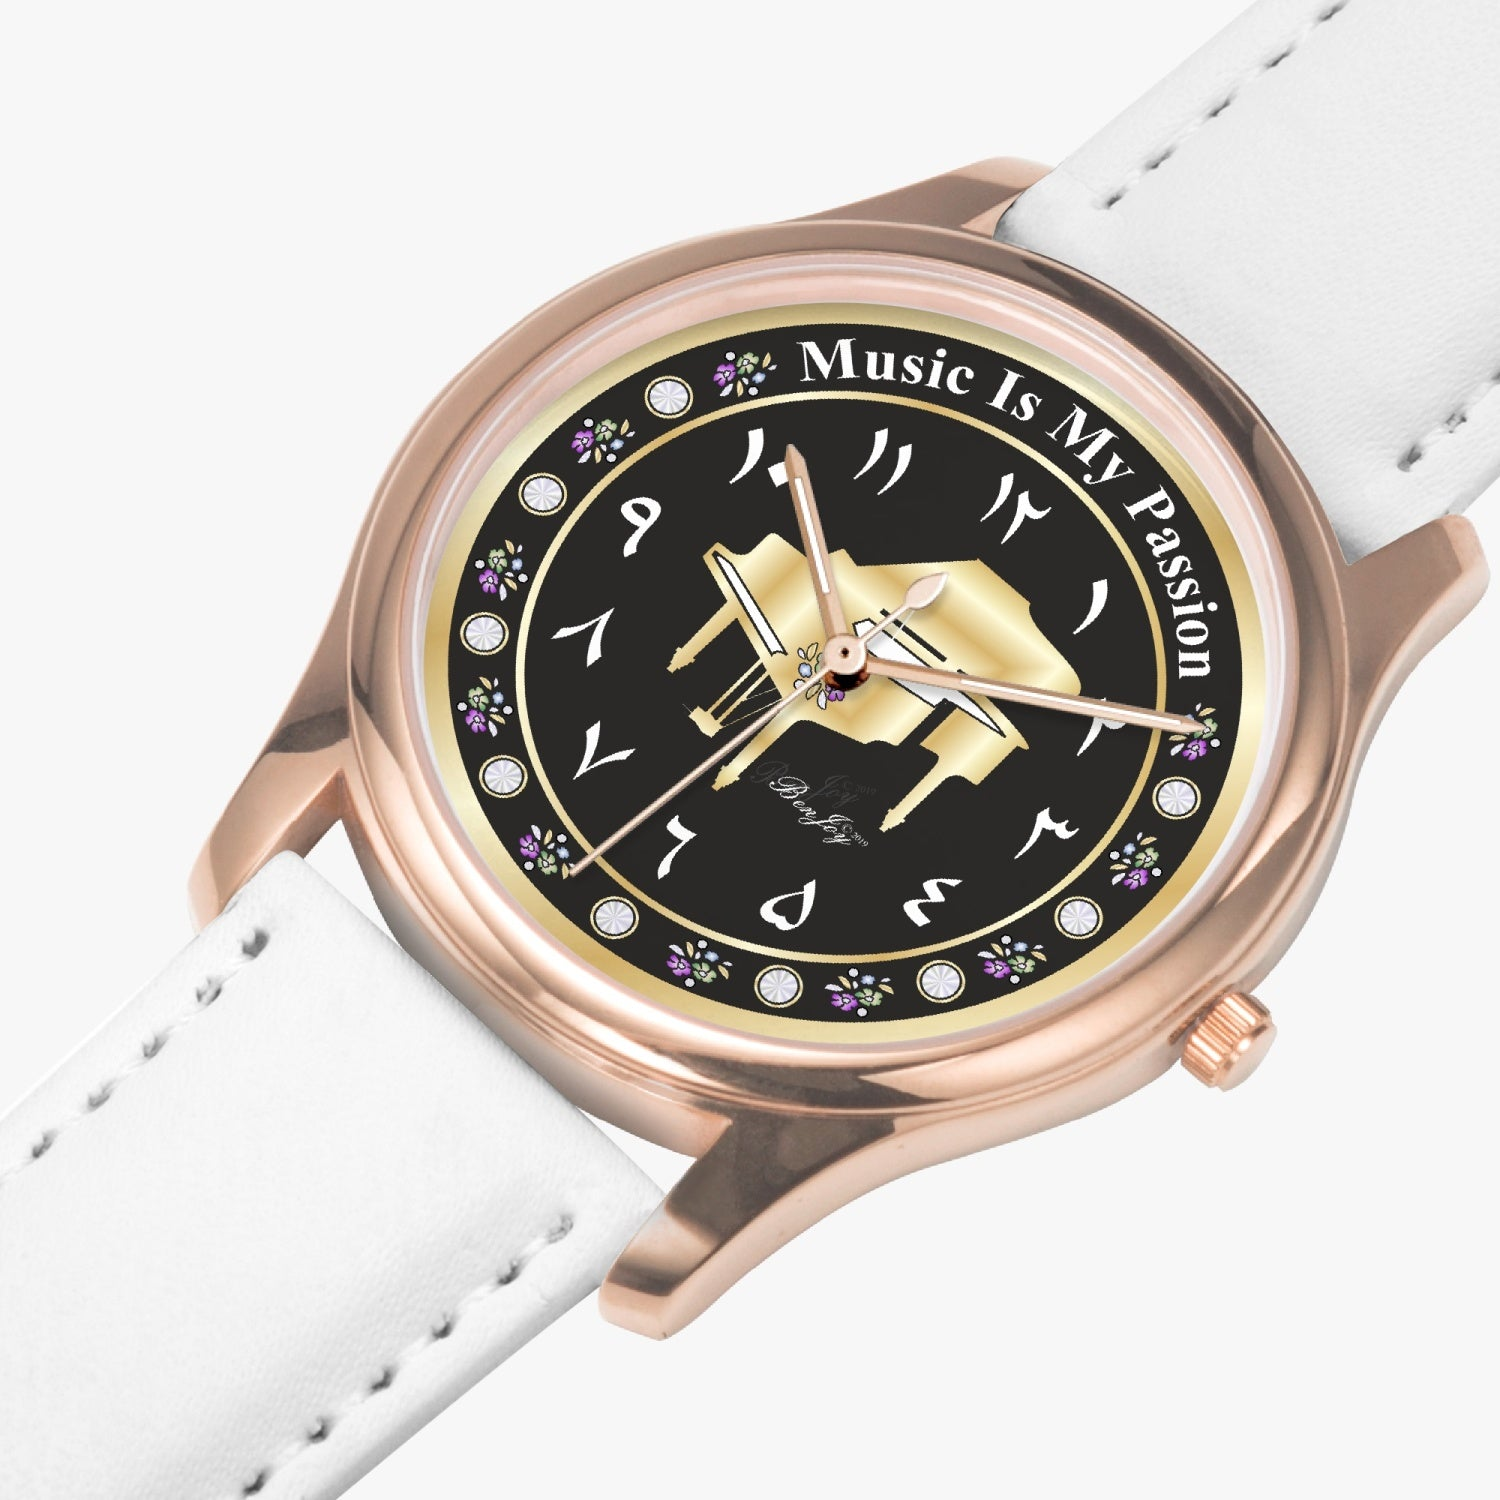 Piano Quartz Watch (Rose Gold) By BenJoy